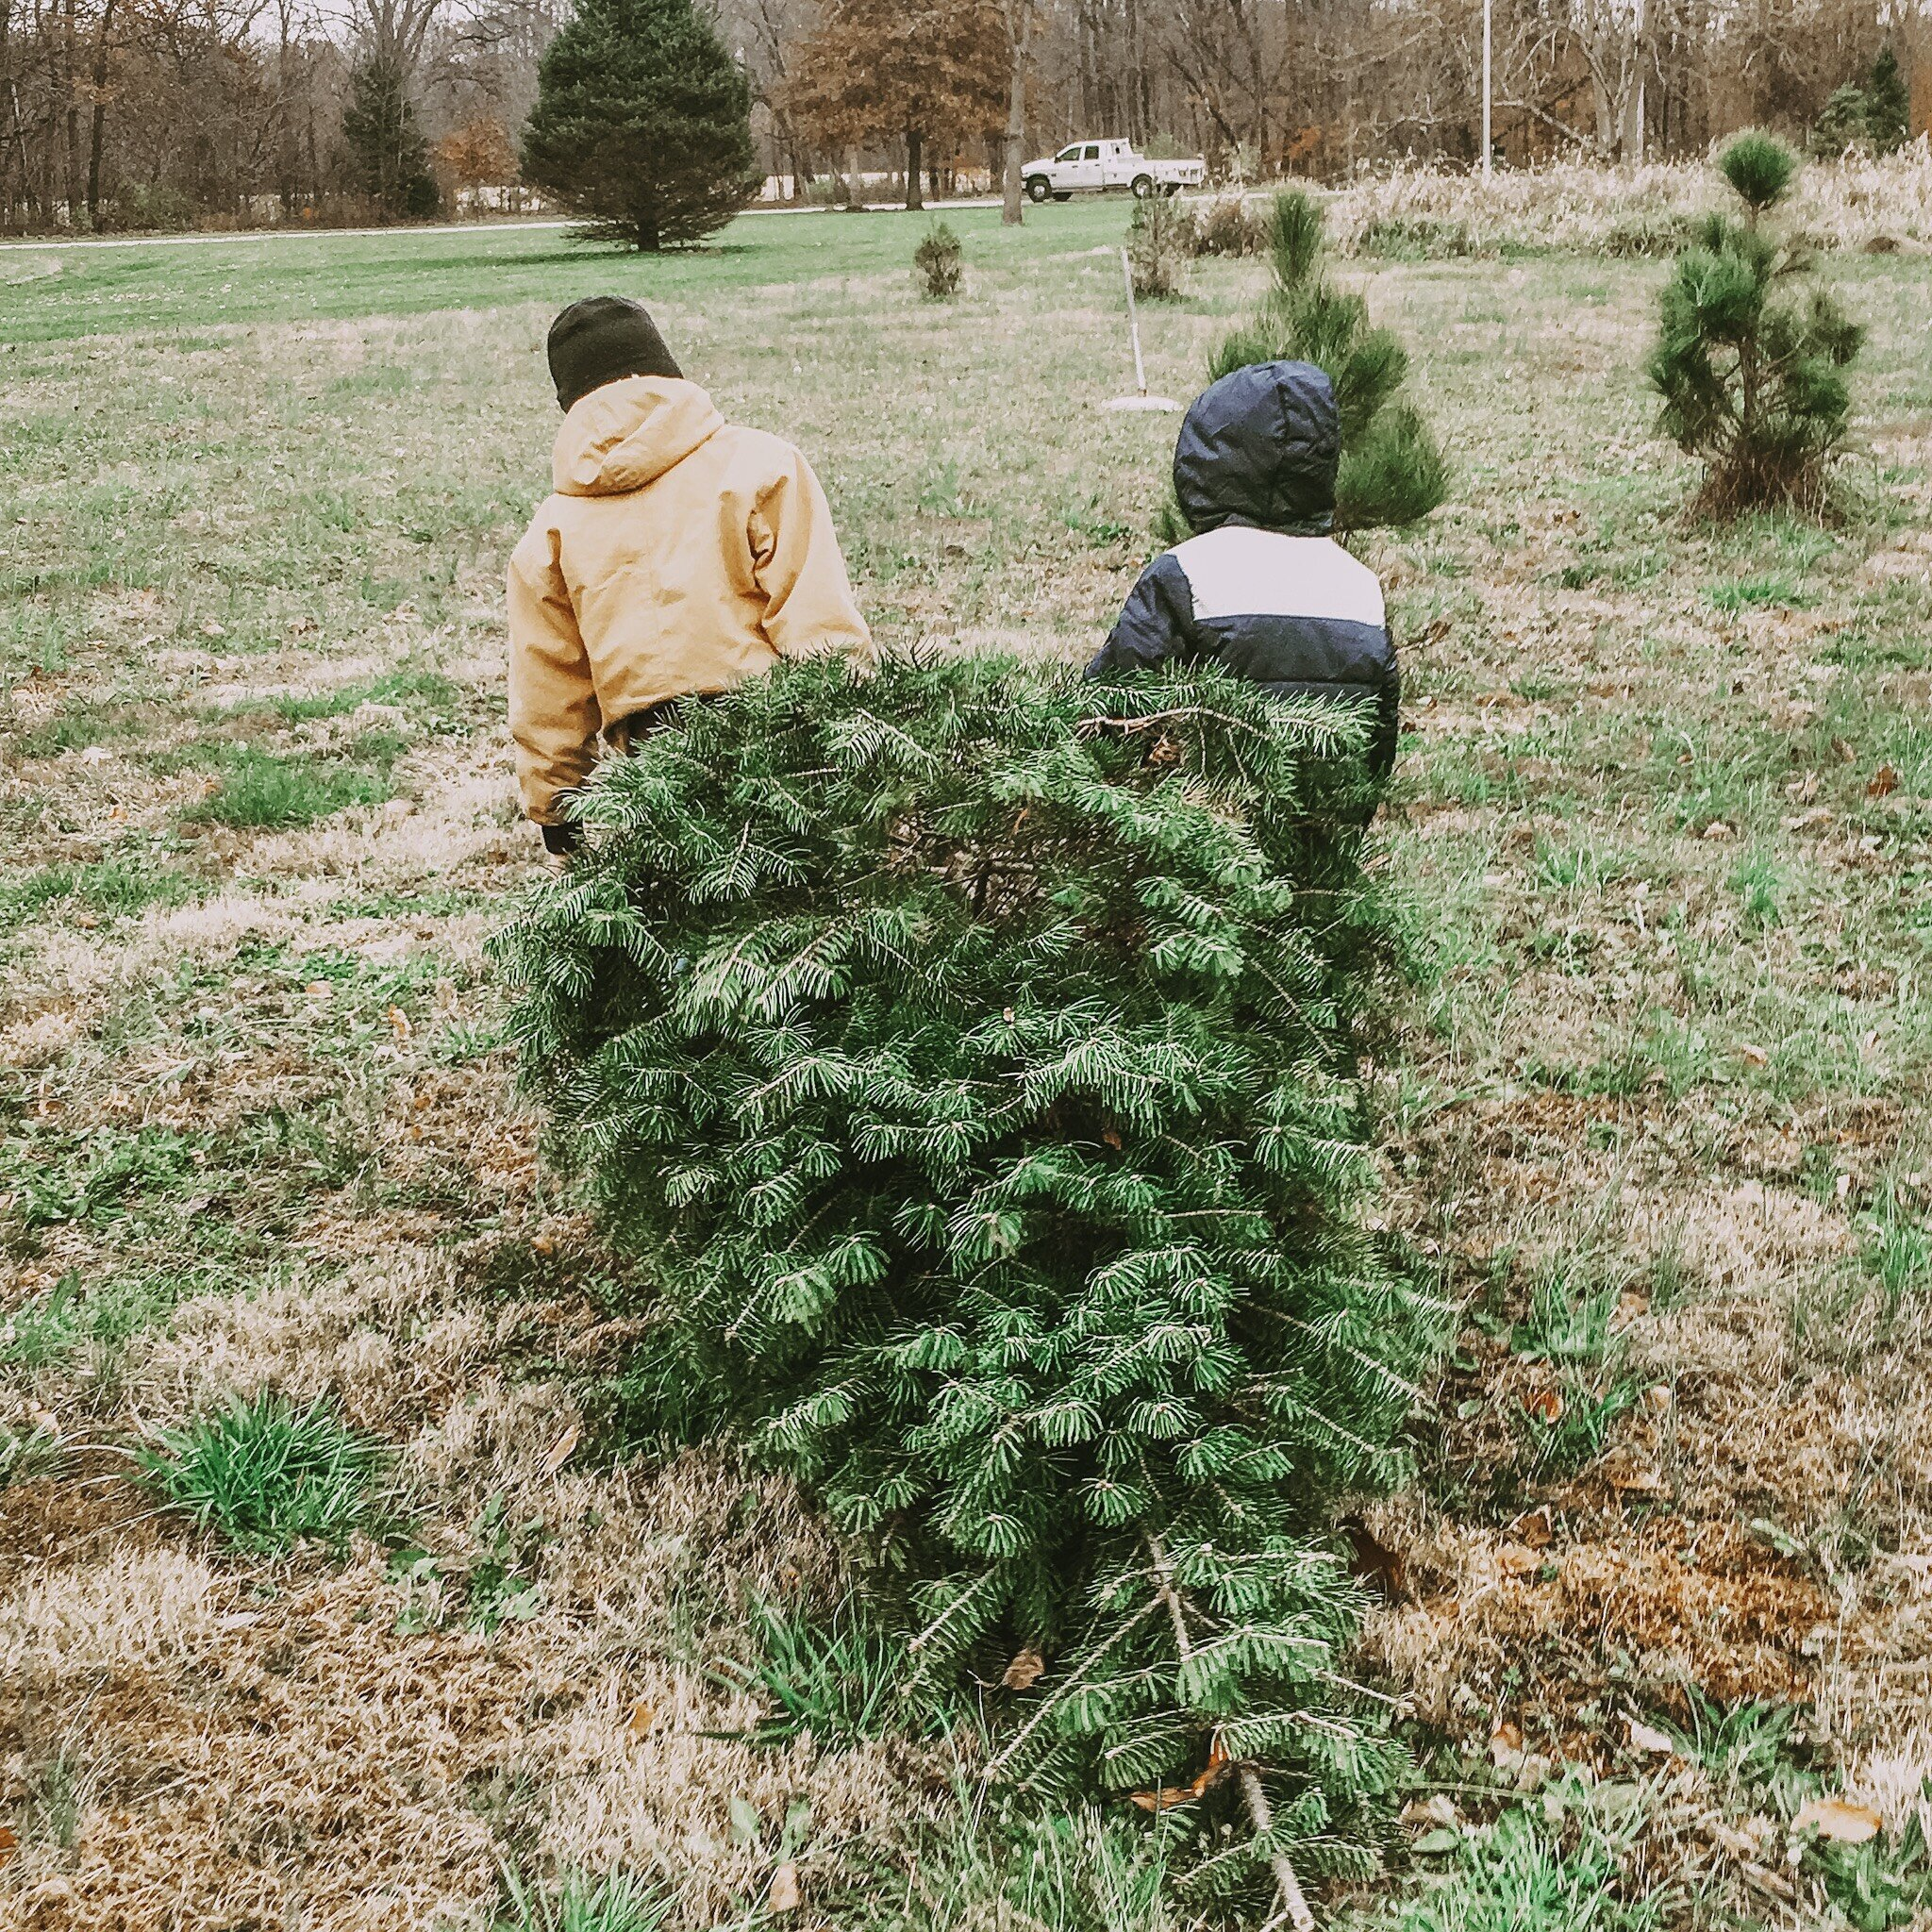 Beau and Braxton found just the right tree for Christmas at the Farm a few years ago. There's nothing better than going to the Christmas Tree Farm to get that fresh Fir. And aren't they darling, I just cant help myself. I love looking back on all our Christmas memories.